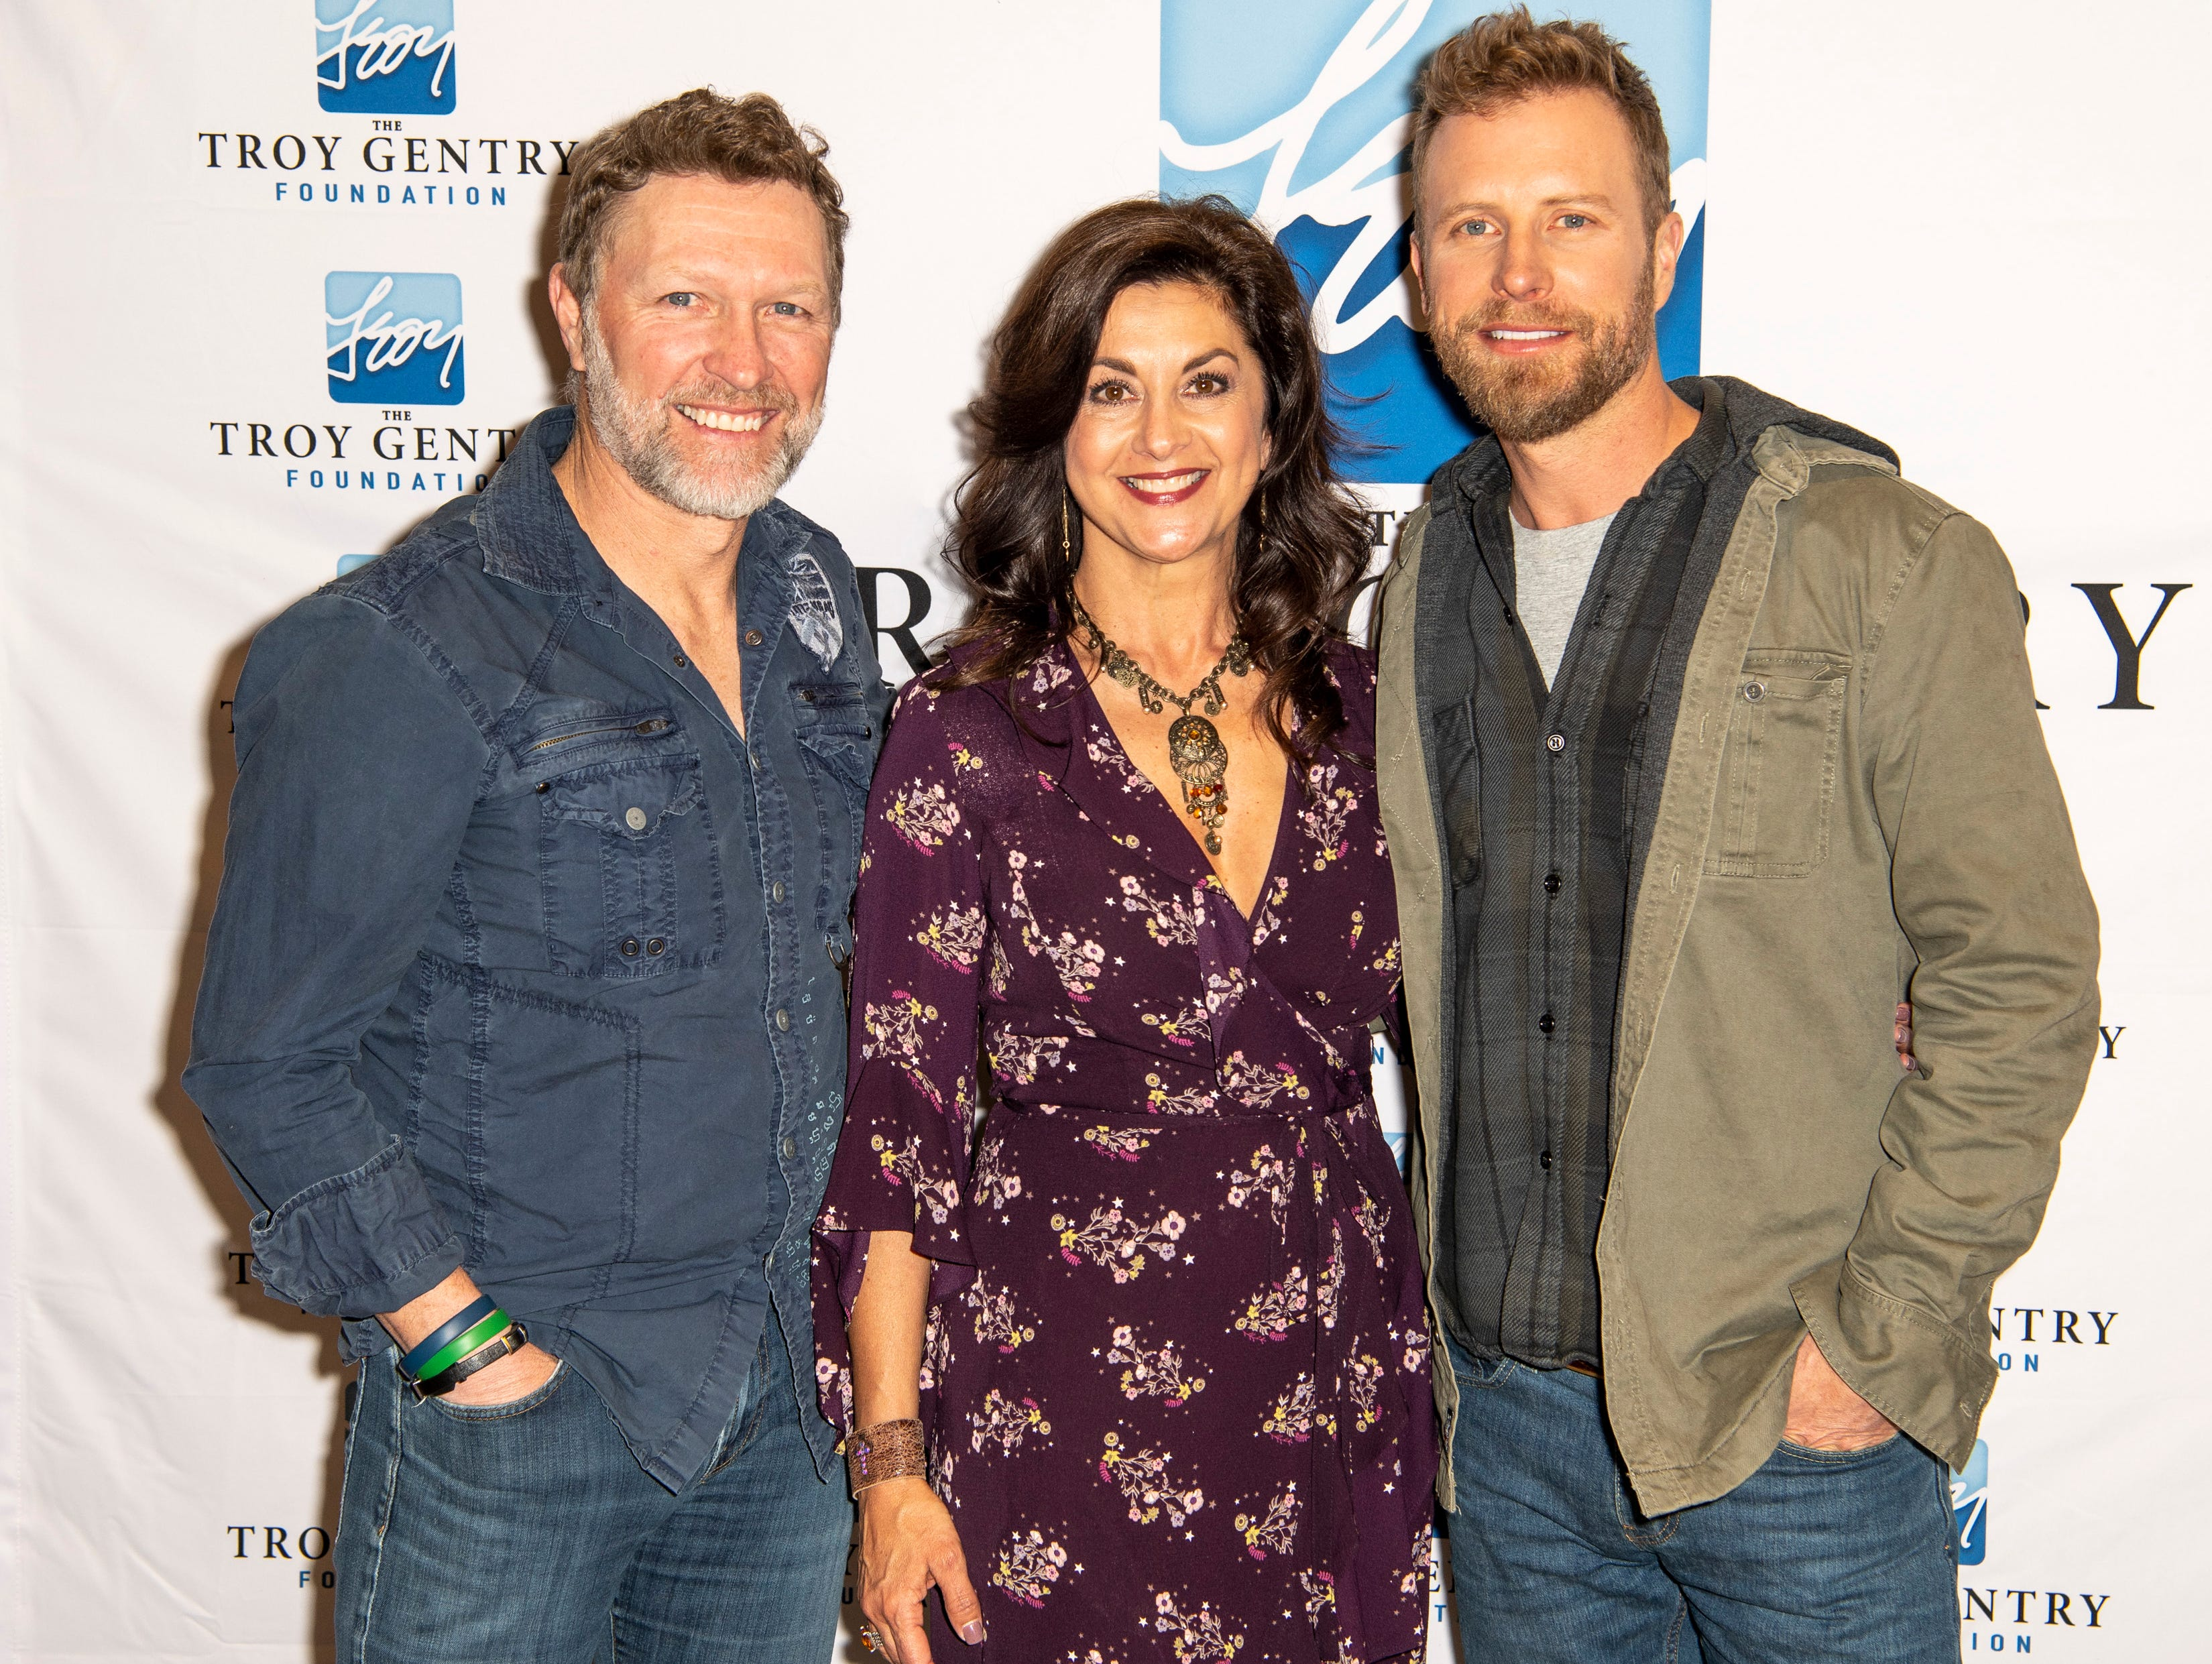 Craig Morgan, Angie Gentry, and Dierks Bentley and on the red carpet before the C'Ya On The Flipside Benefit Concert at the Grand Ole Opry House in Nashville, Tenn., Wednesday, Jan. 9, 2019.